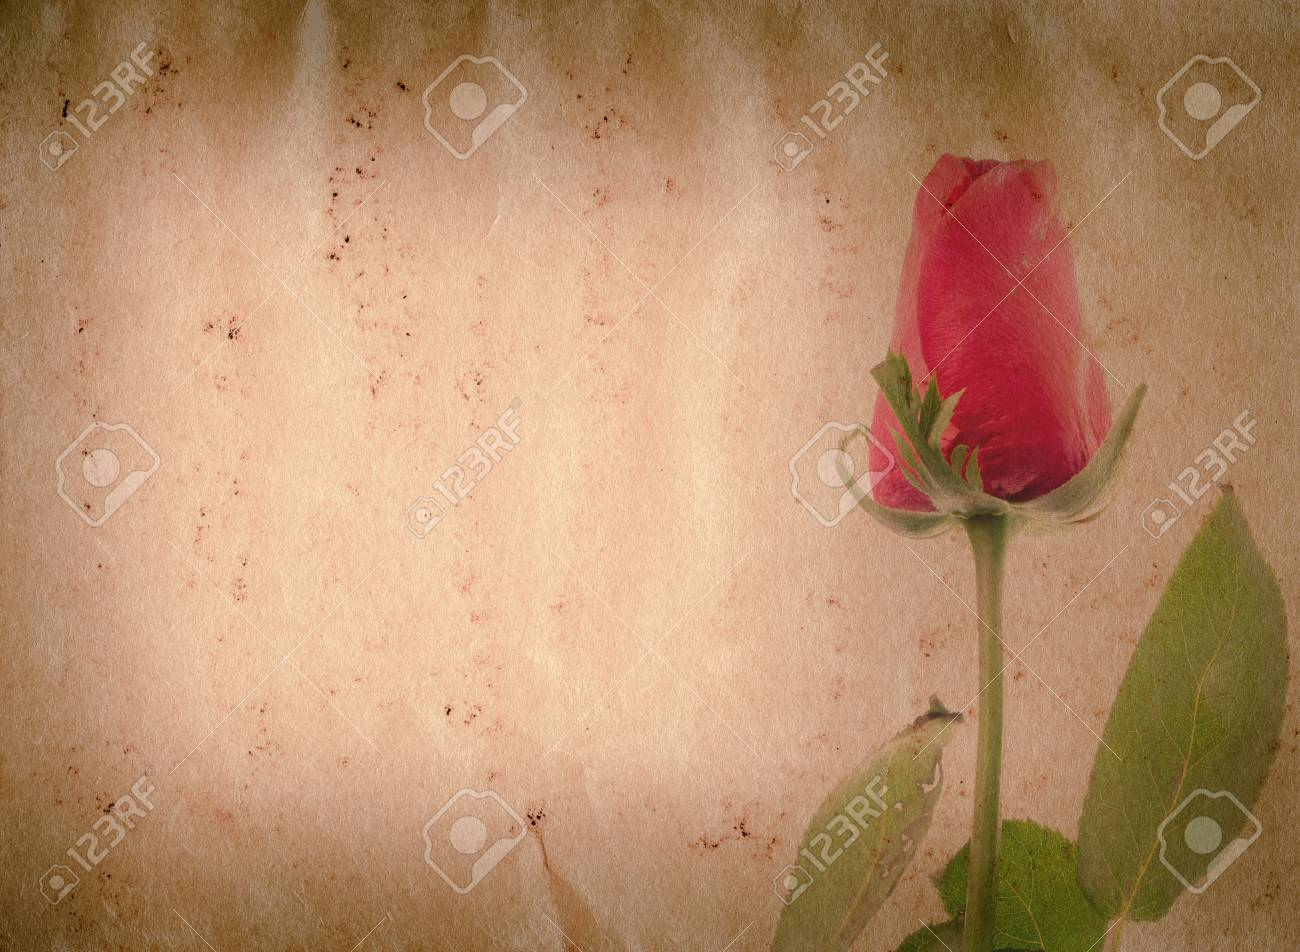 red rose flower old grunge paper texture background Stock Photo - 13463536